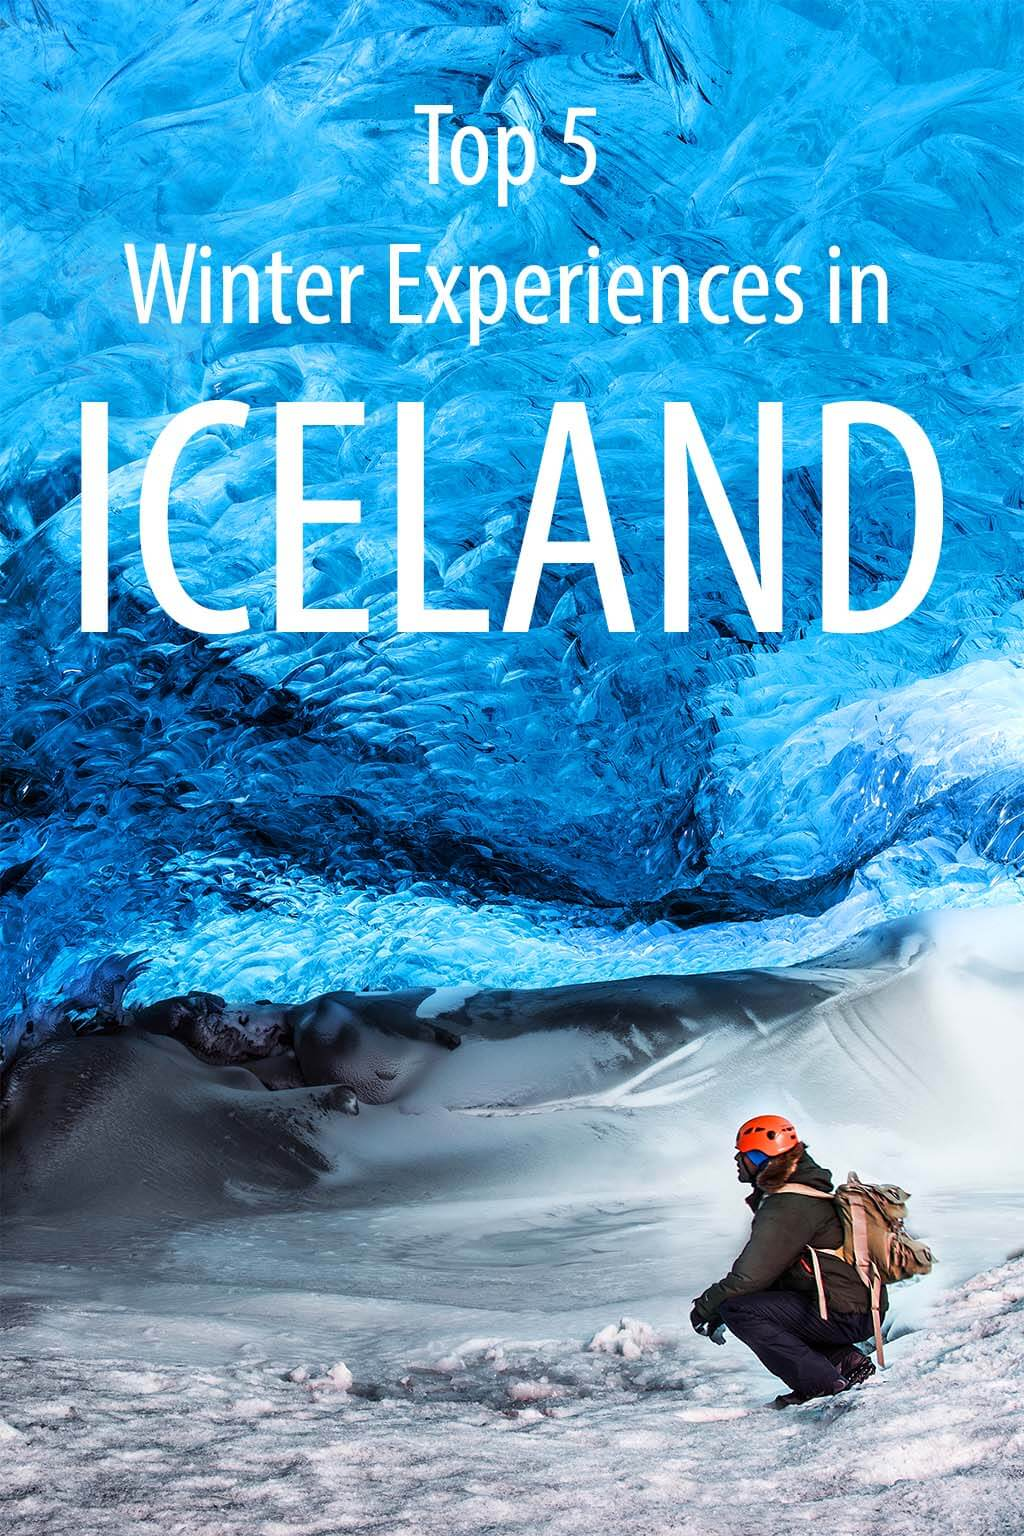 5 incredible winter experiences in Iceland for your bucket list or for the next trip. Wouldn't you travel to Iceland in winter for this?